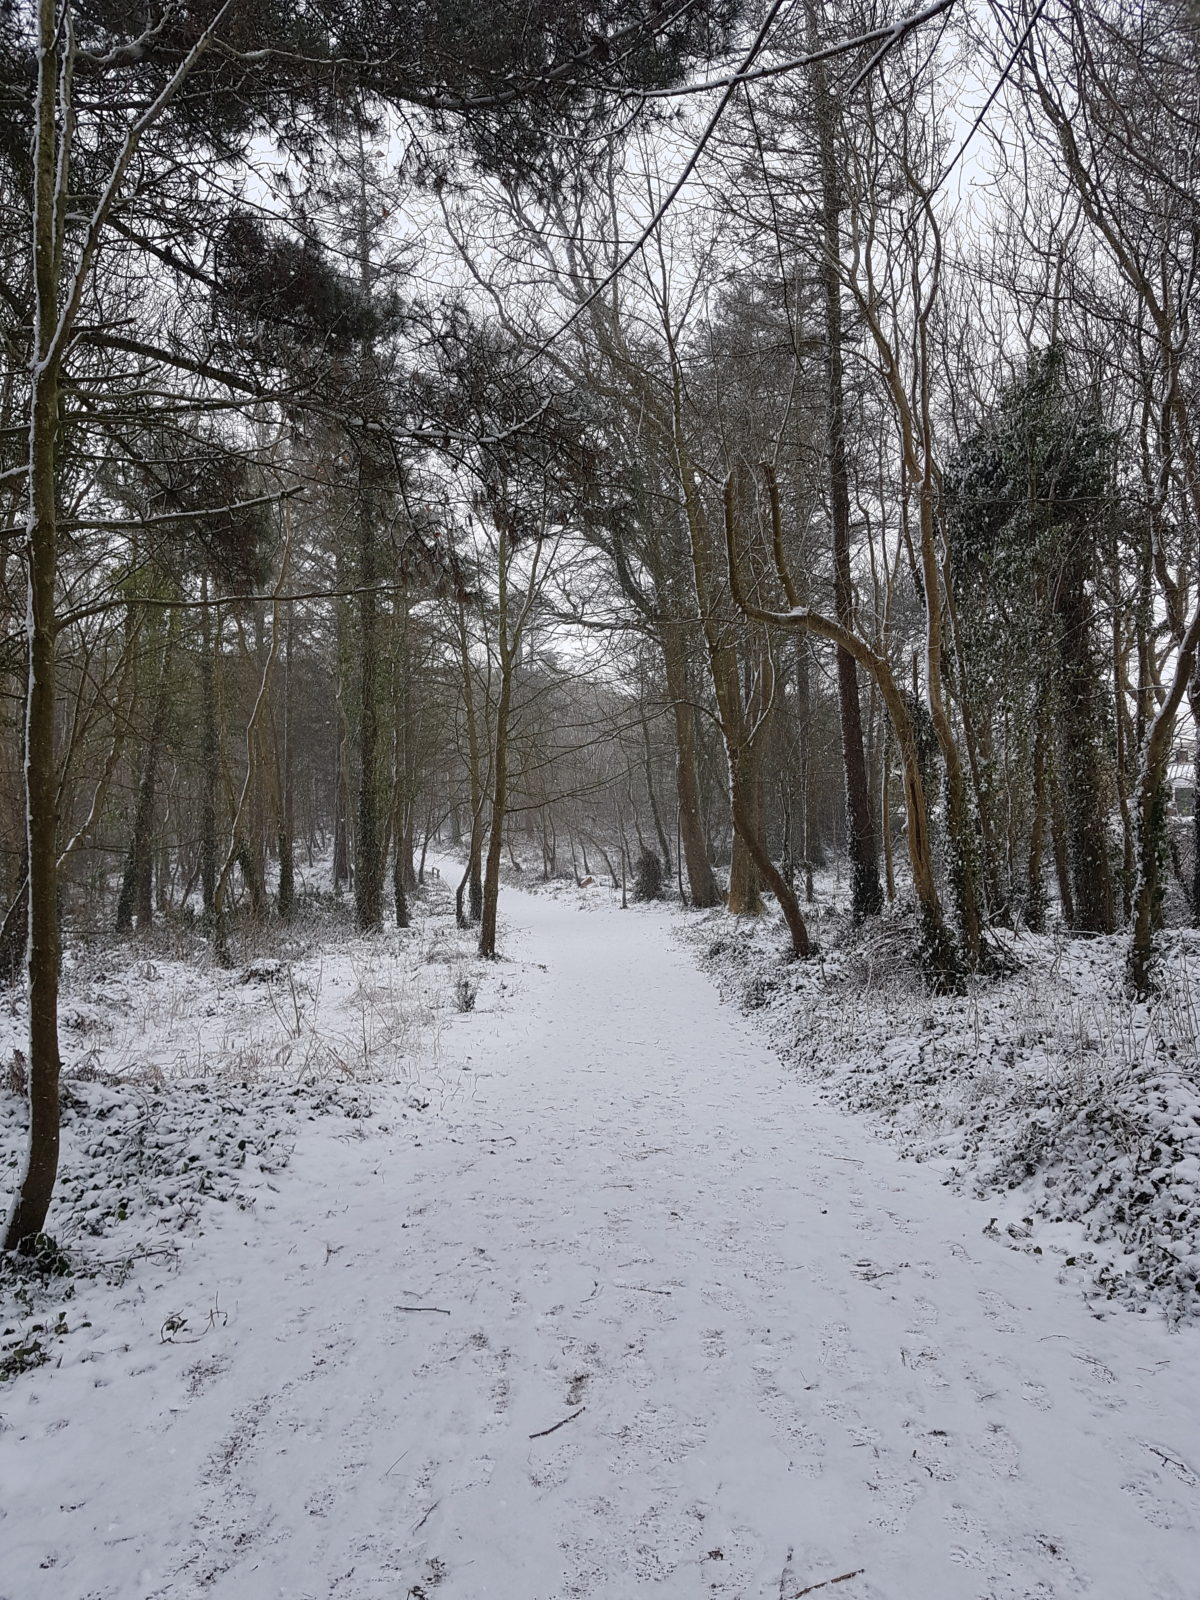 Woods in the snow – Denis O Donoghue